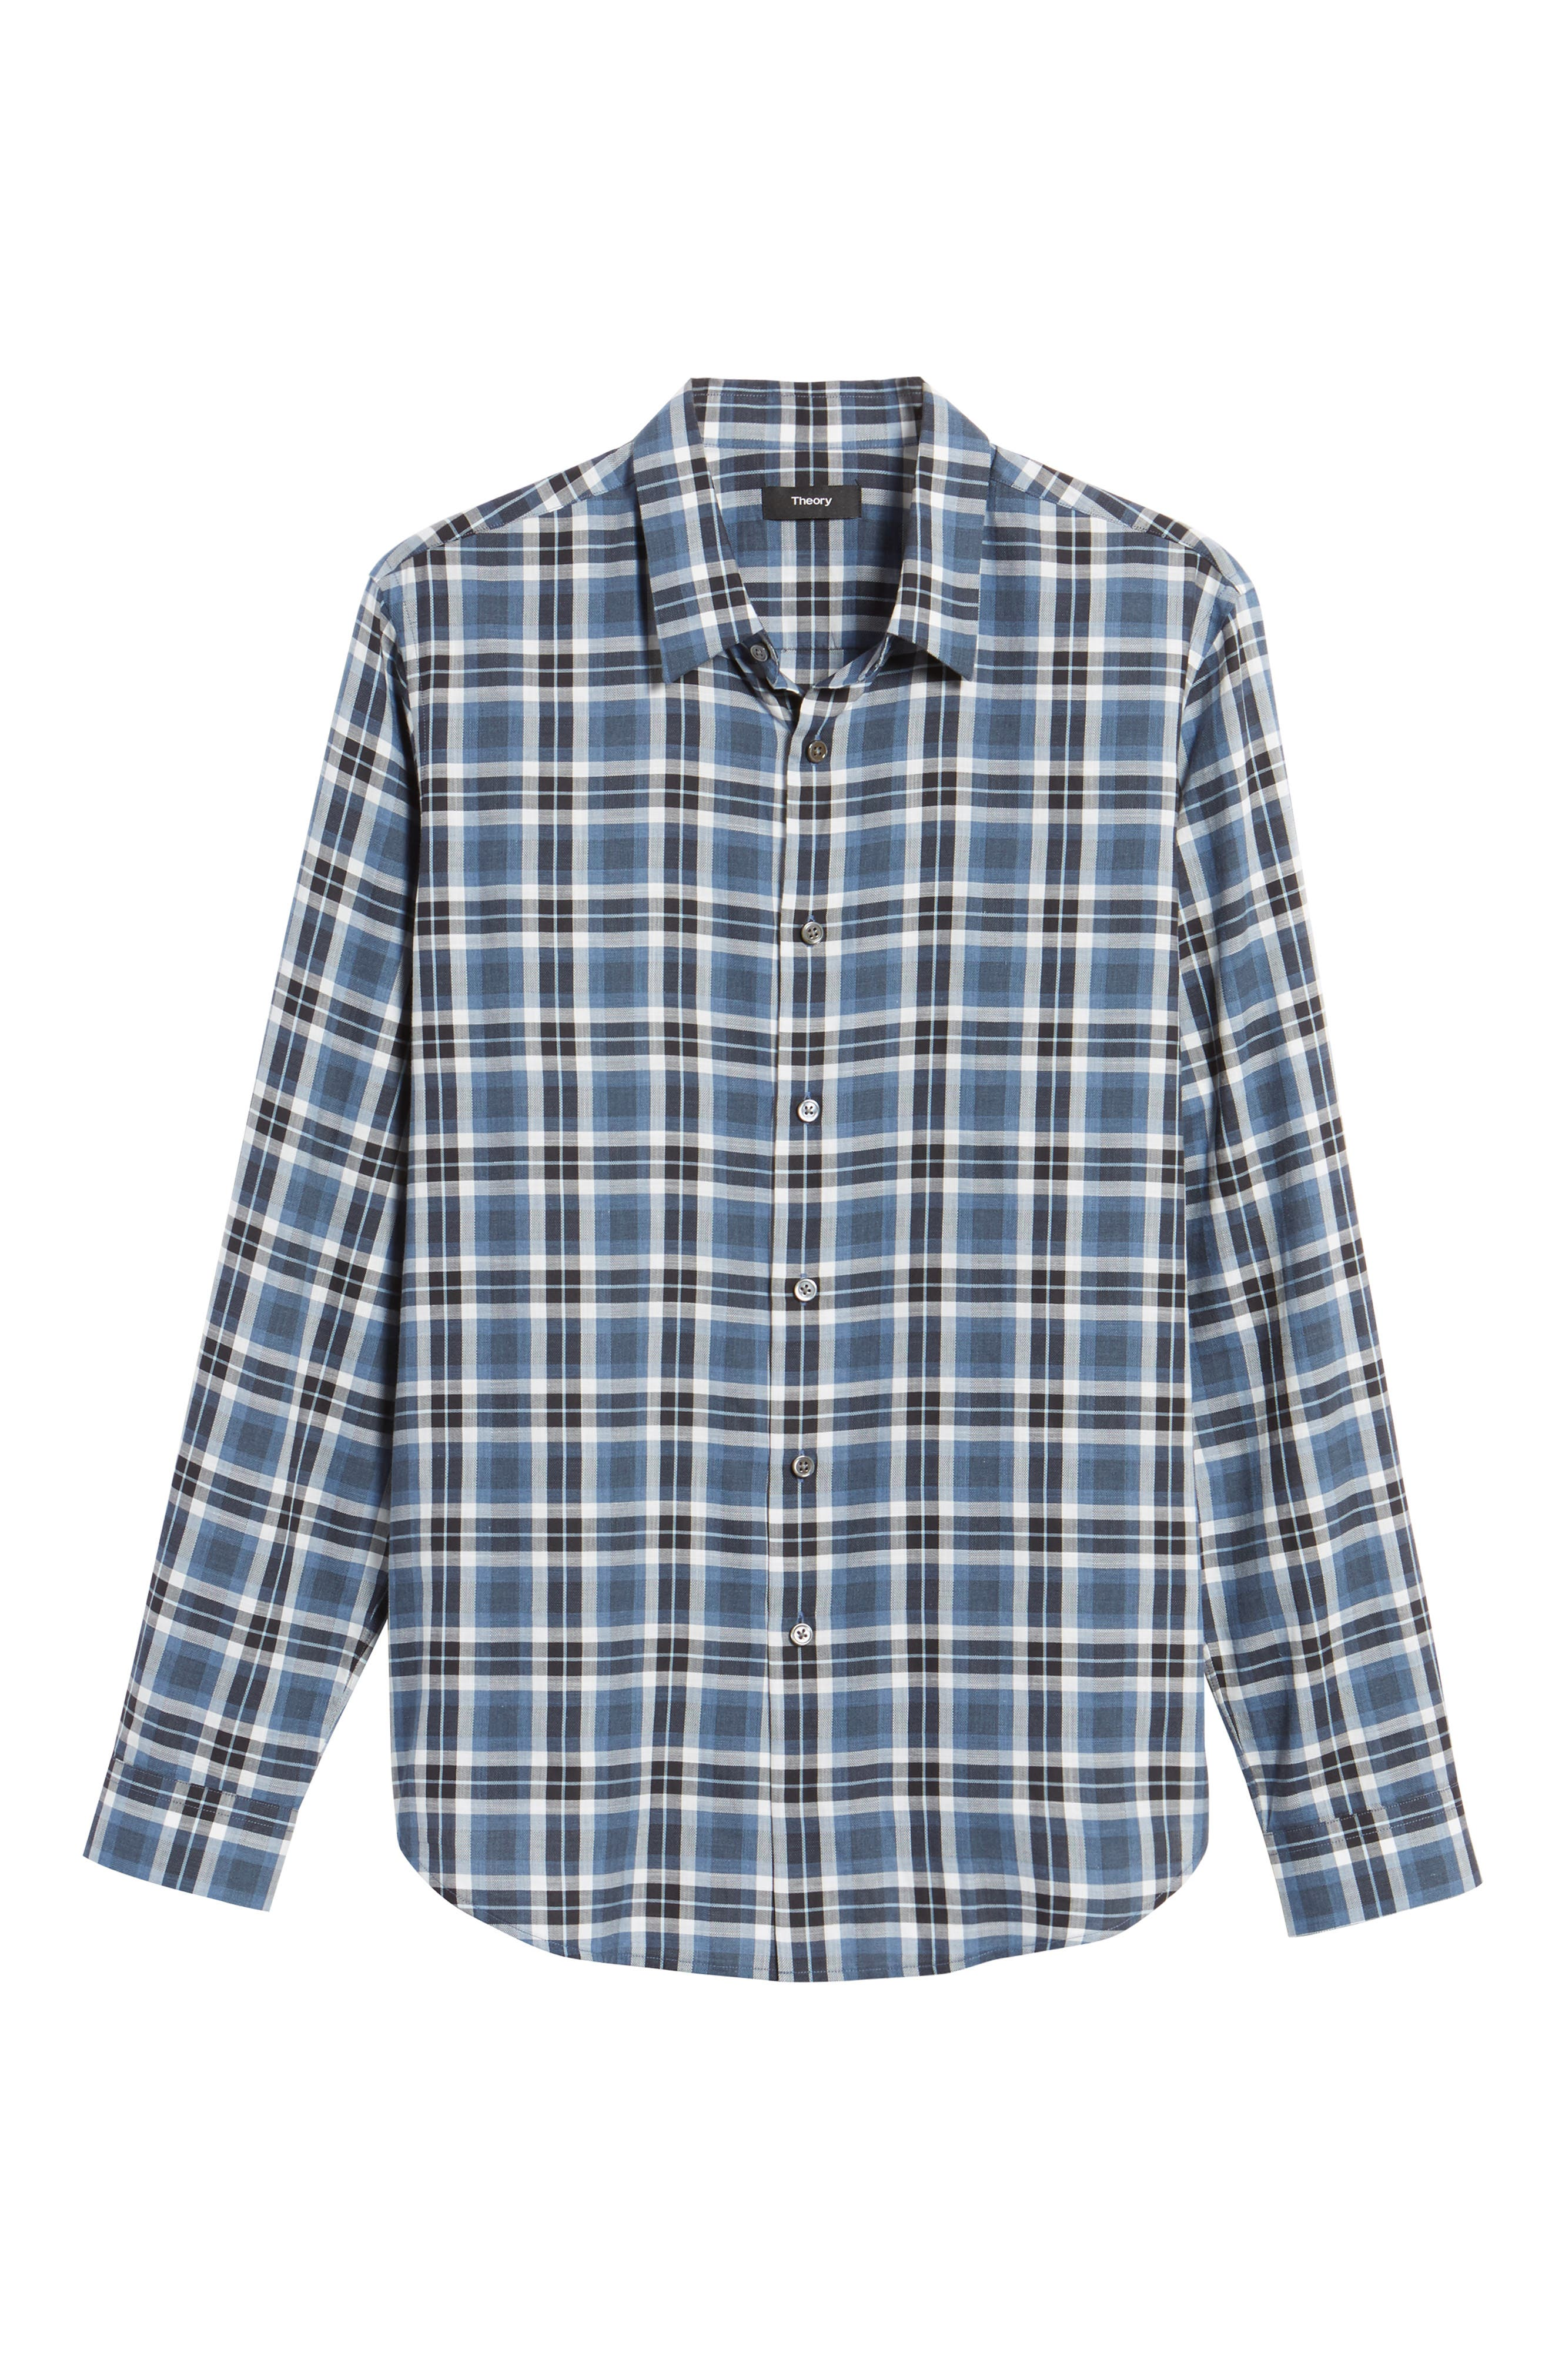 Trim Fit Plaid Flannel Shirt,                             Alternate thumbnail 6, color,                             413